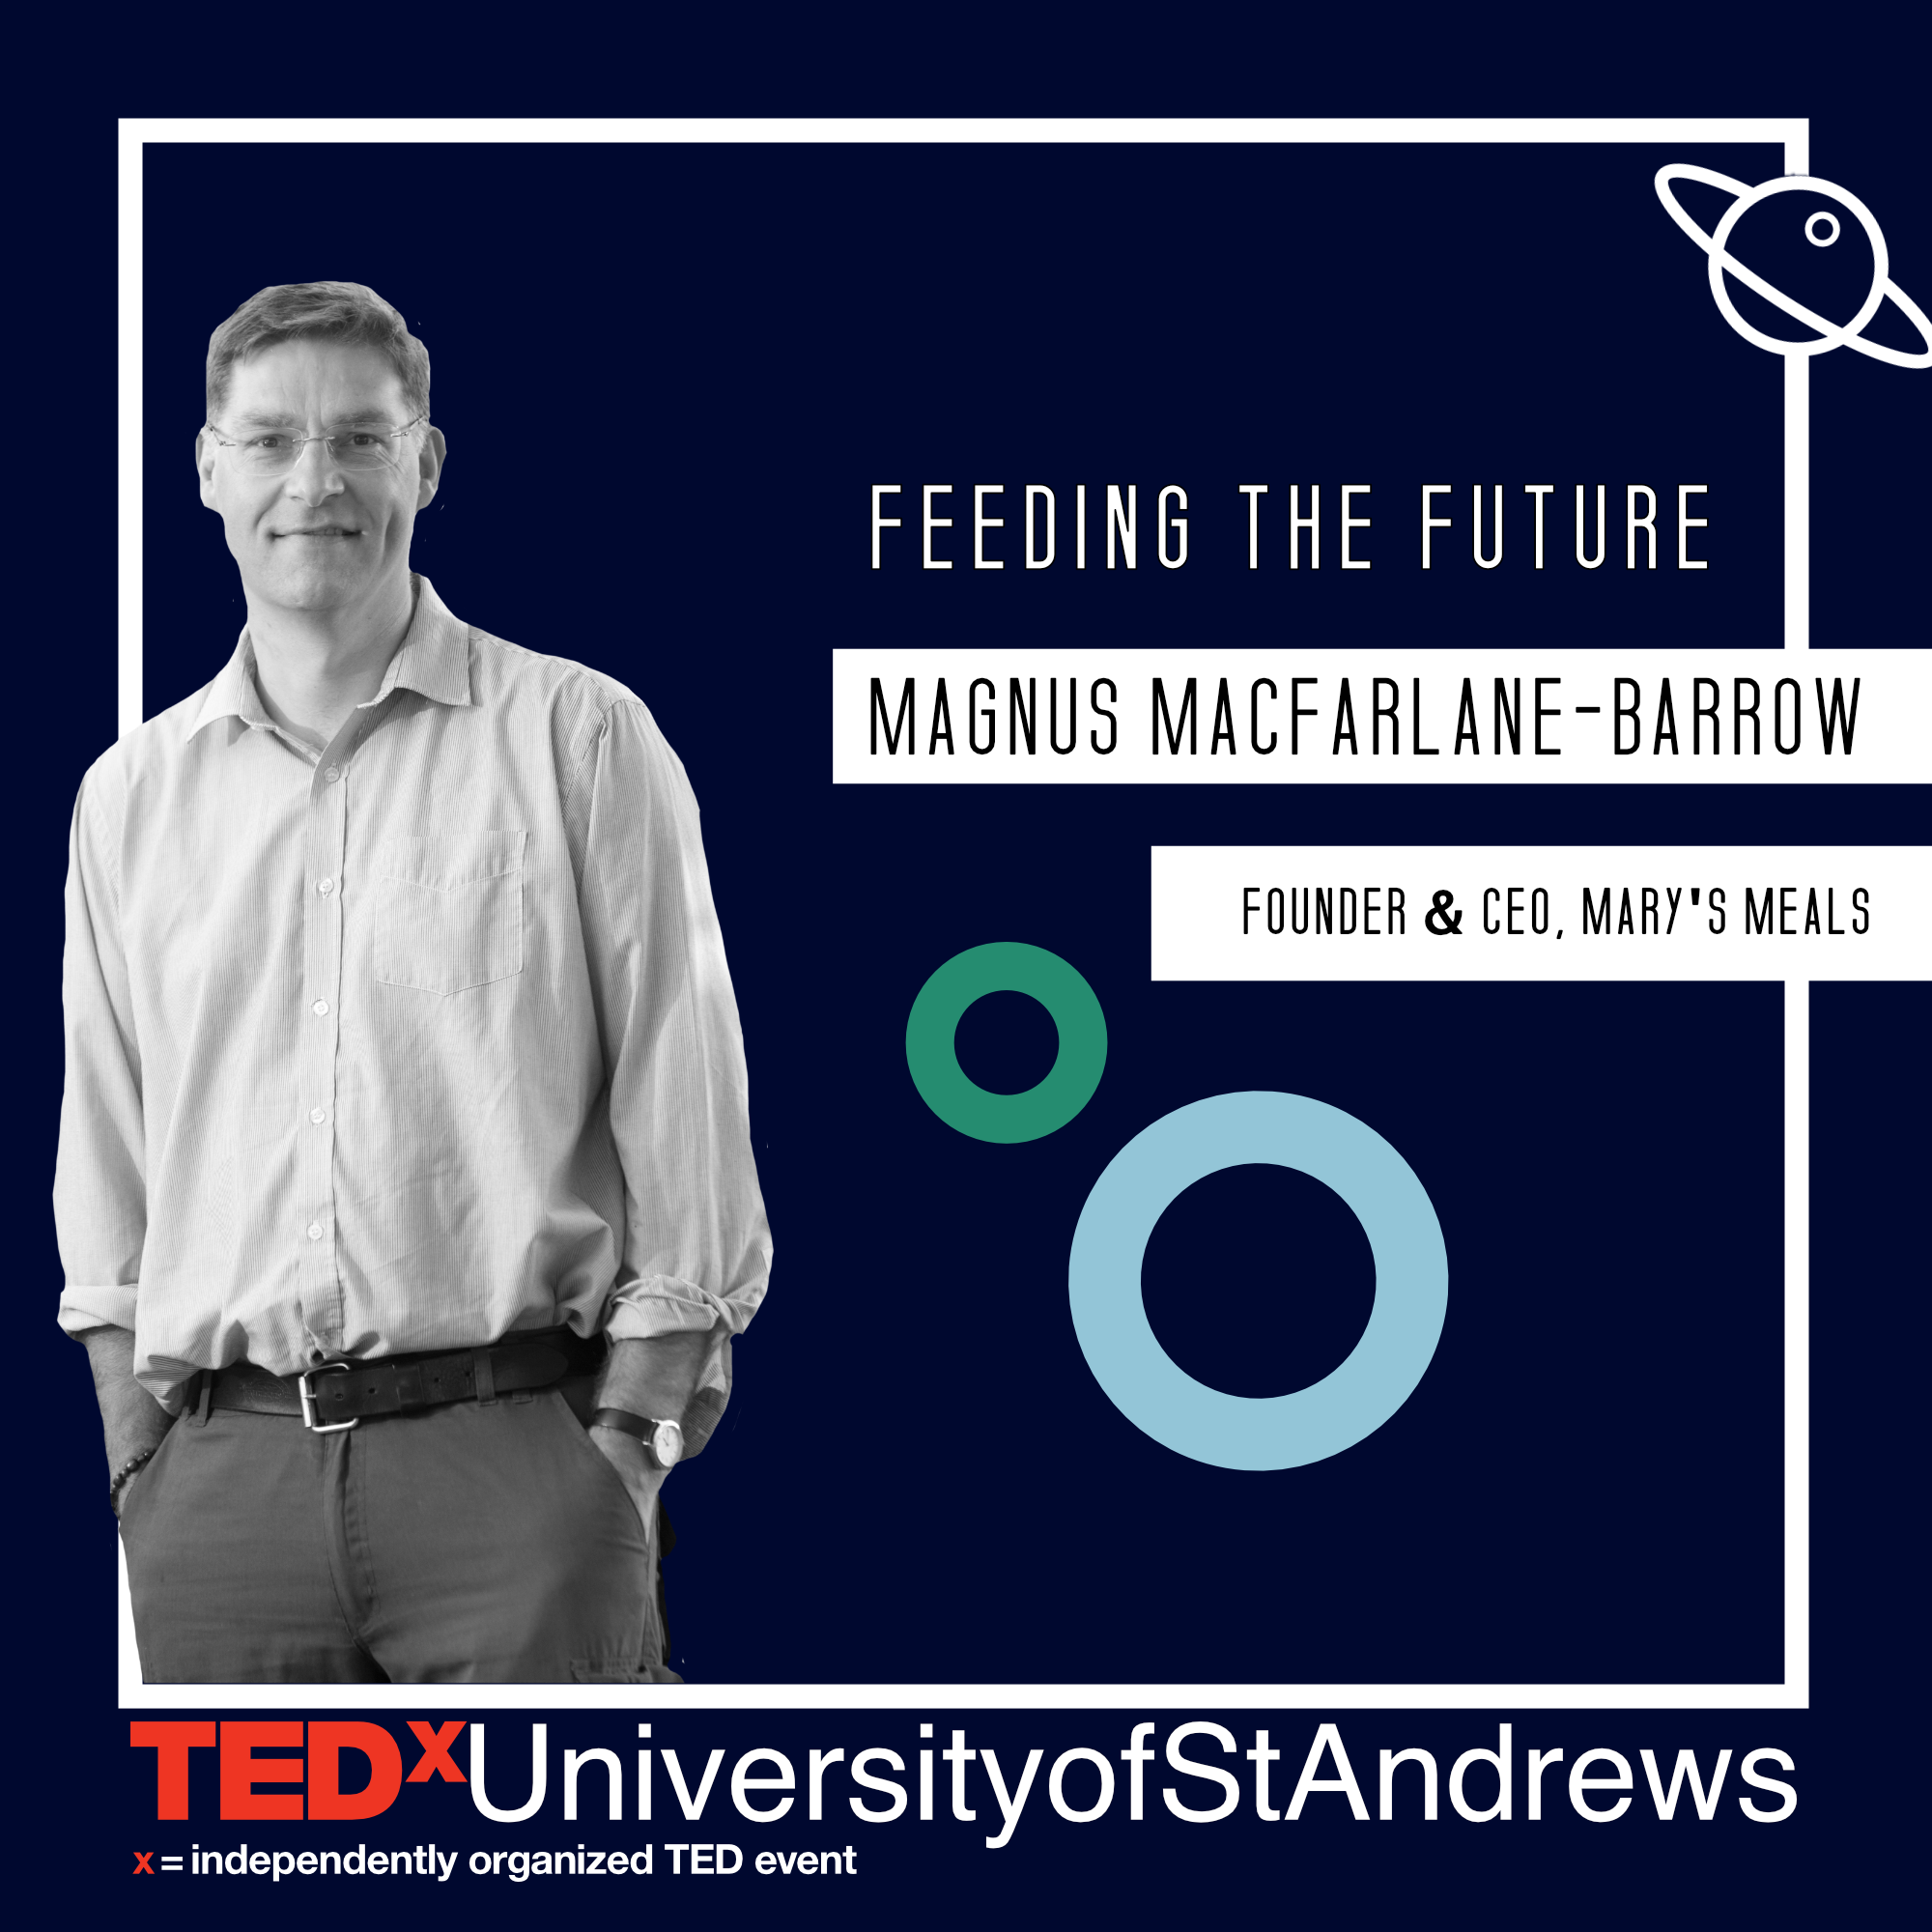 """MAGNUS MACFARLANE-BARROW   Magnus MacFarlane-Barrow OBE is founder and chief executive of Mary's Meals, a global charity that provides a daily meal in a place of education to more than one million of the world's poorest children. The meal attracts children to the classroom, where they gain a basic education that can provide an escape route from poverty.  During a trip to Malawi in 2002, Magnus met a family whose predicament was to spark a change in not only his own life, but in the lives of thousands of others. Lying on the floor of a hut was a mother named Emma, who was dying of AIDS. Her six children were around her and Magnus asked the eldest son, Edward, what he hoped for from life. """"To have enough to eat and to go to school one day,"""" was his answer. Edward's words inspired a mission to attract children to school by providing daily meals, and it was from this that Mary's Meals was born. One child at a time, through Mary's Meals, Magnus has let children all over the world know they matter.  From feeding just 200 in southern Malawi in 2002, the charity now works with communities in 12 countries, providing a meal for 1,187,104 children every school day. The cost of feeding a child for a whole school year with Mary's Meals is just £12.20."""